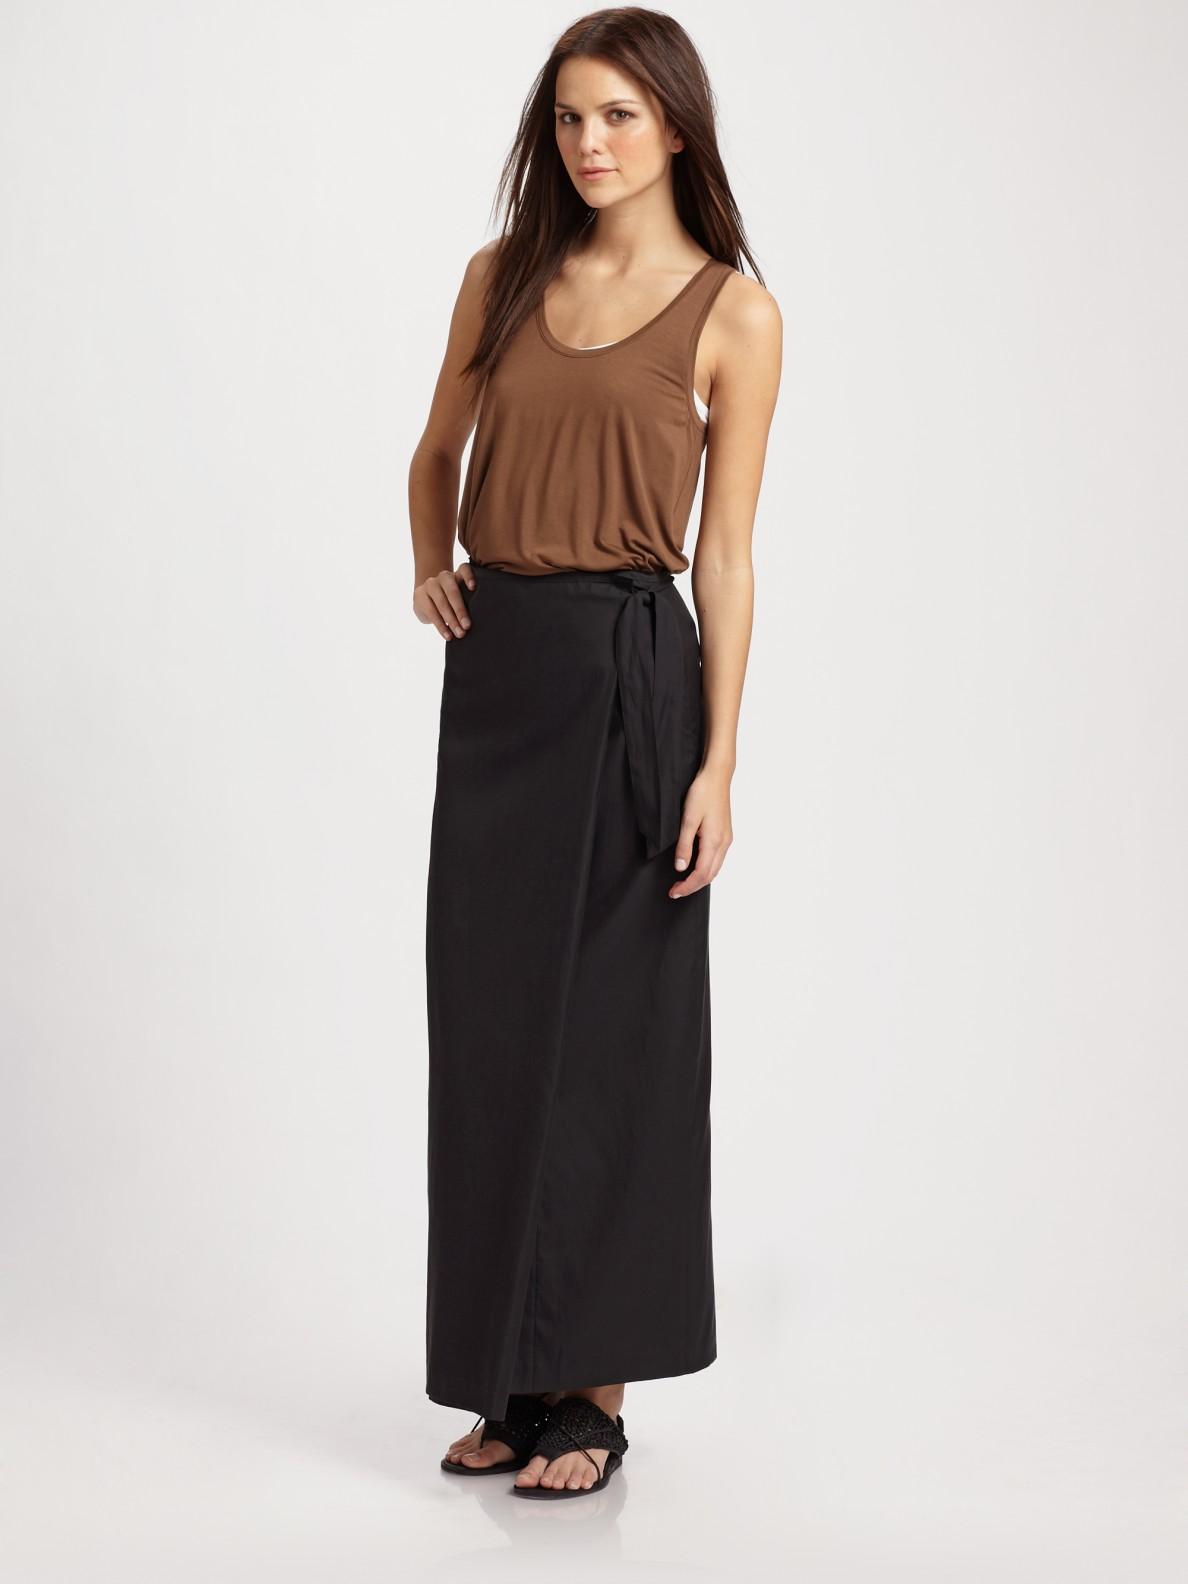 Long Wrap Skirt Jill Dress